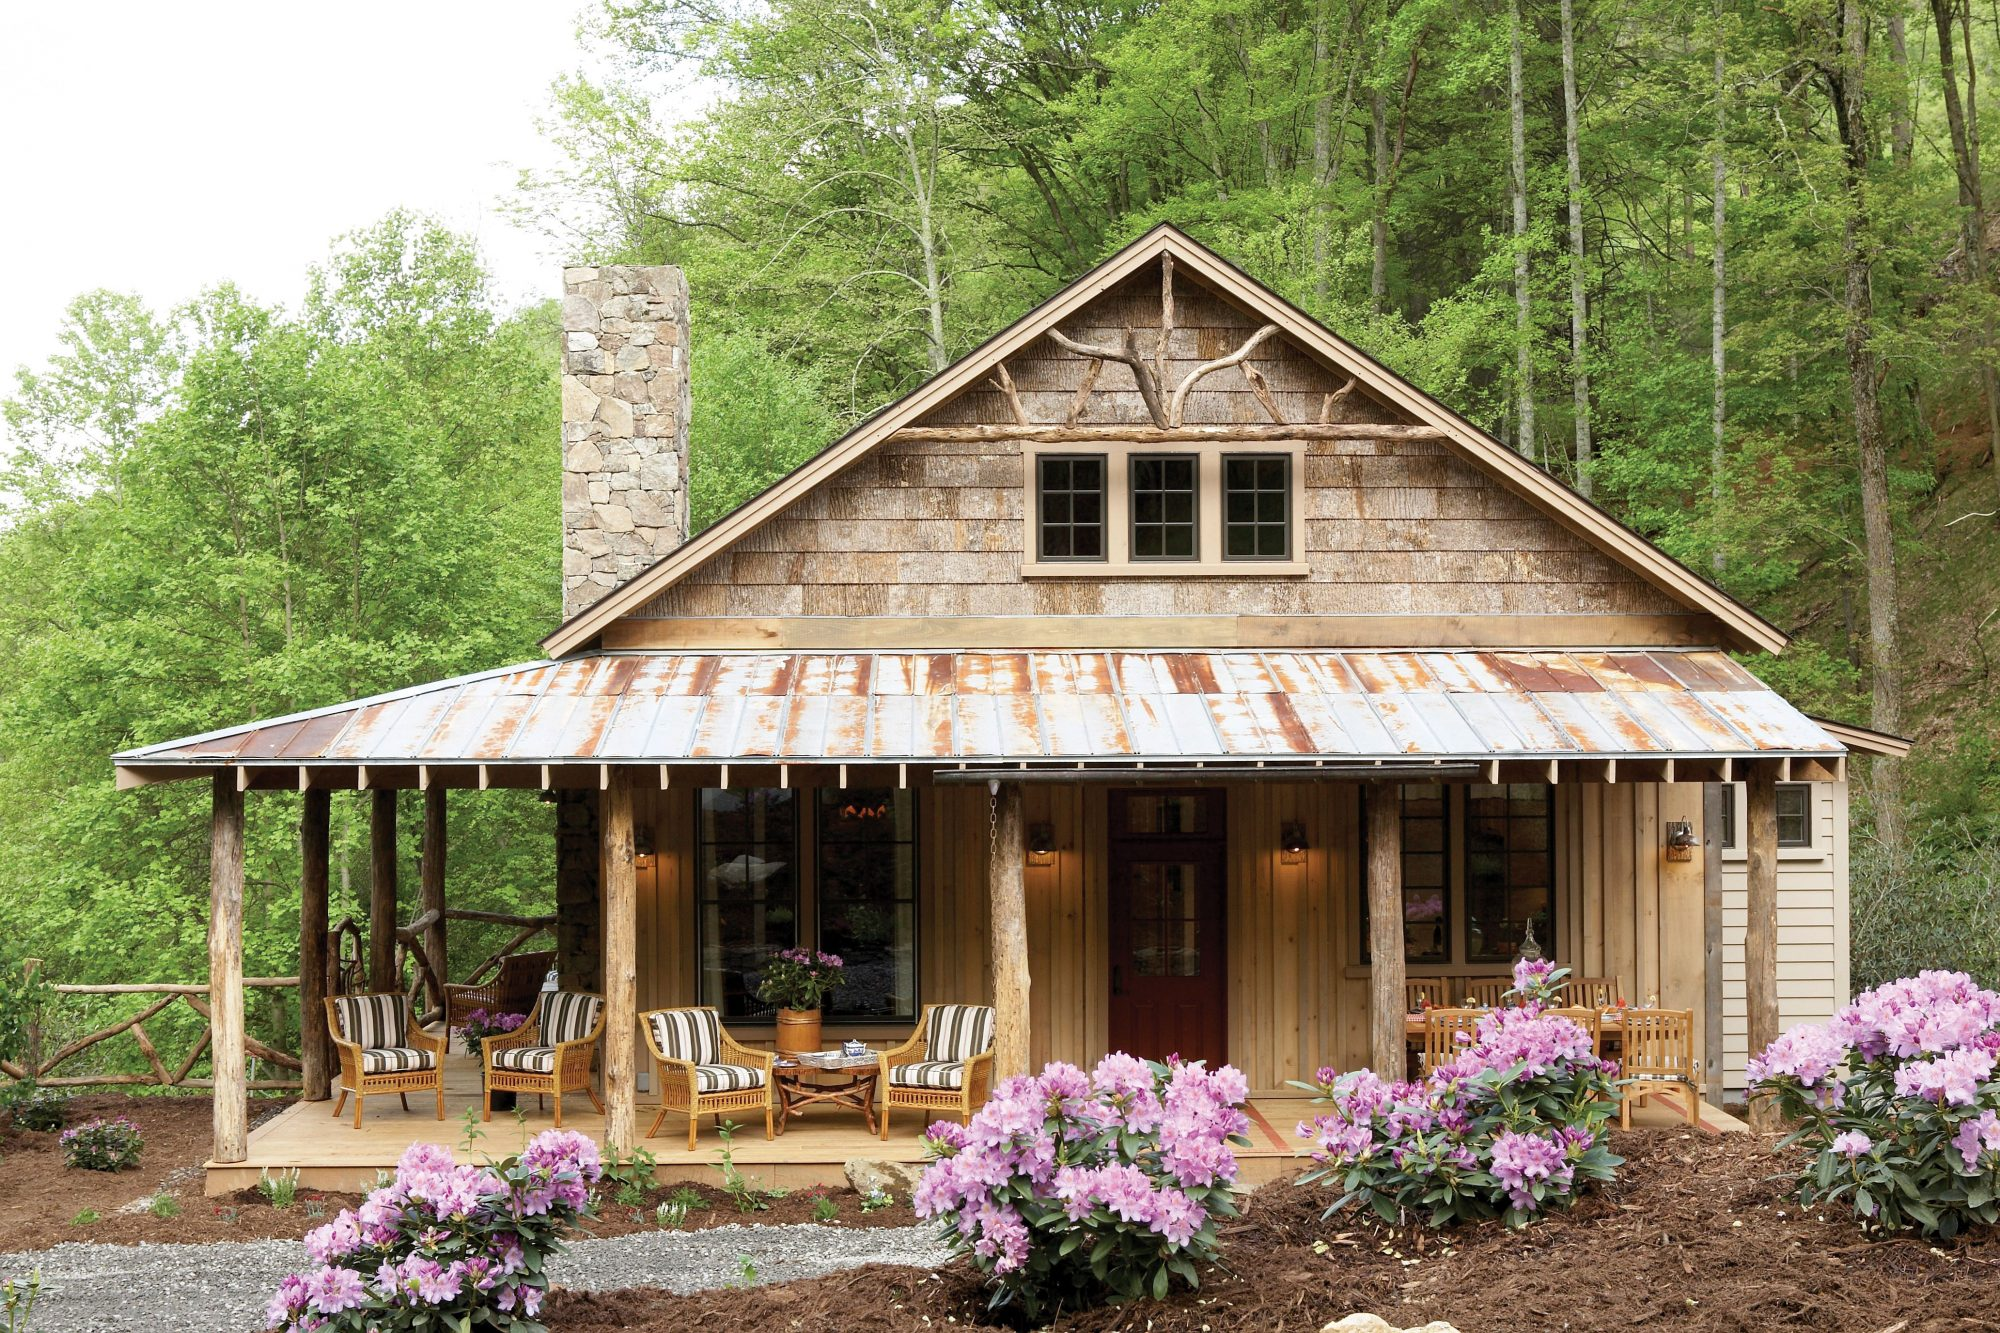 17 House Plans with Porches - Southern Living on log home front door, luxury log cabin home designs, log home sunroom designs, log home entry designs, log home loft designs, log home interior design, log house designs, log home patio designs, log home enclosed porch designs, log home kitchen design, log home great room designs, log home front landscaping, log home counter tops, log home bath designs, log home garden designs, log home deck designs, log home bedroom designs, log home living room designs, log home window sill, log home balusters,